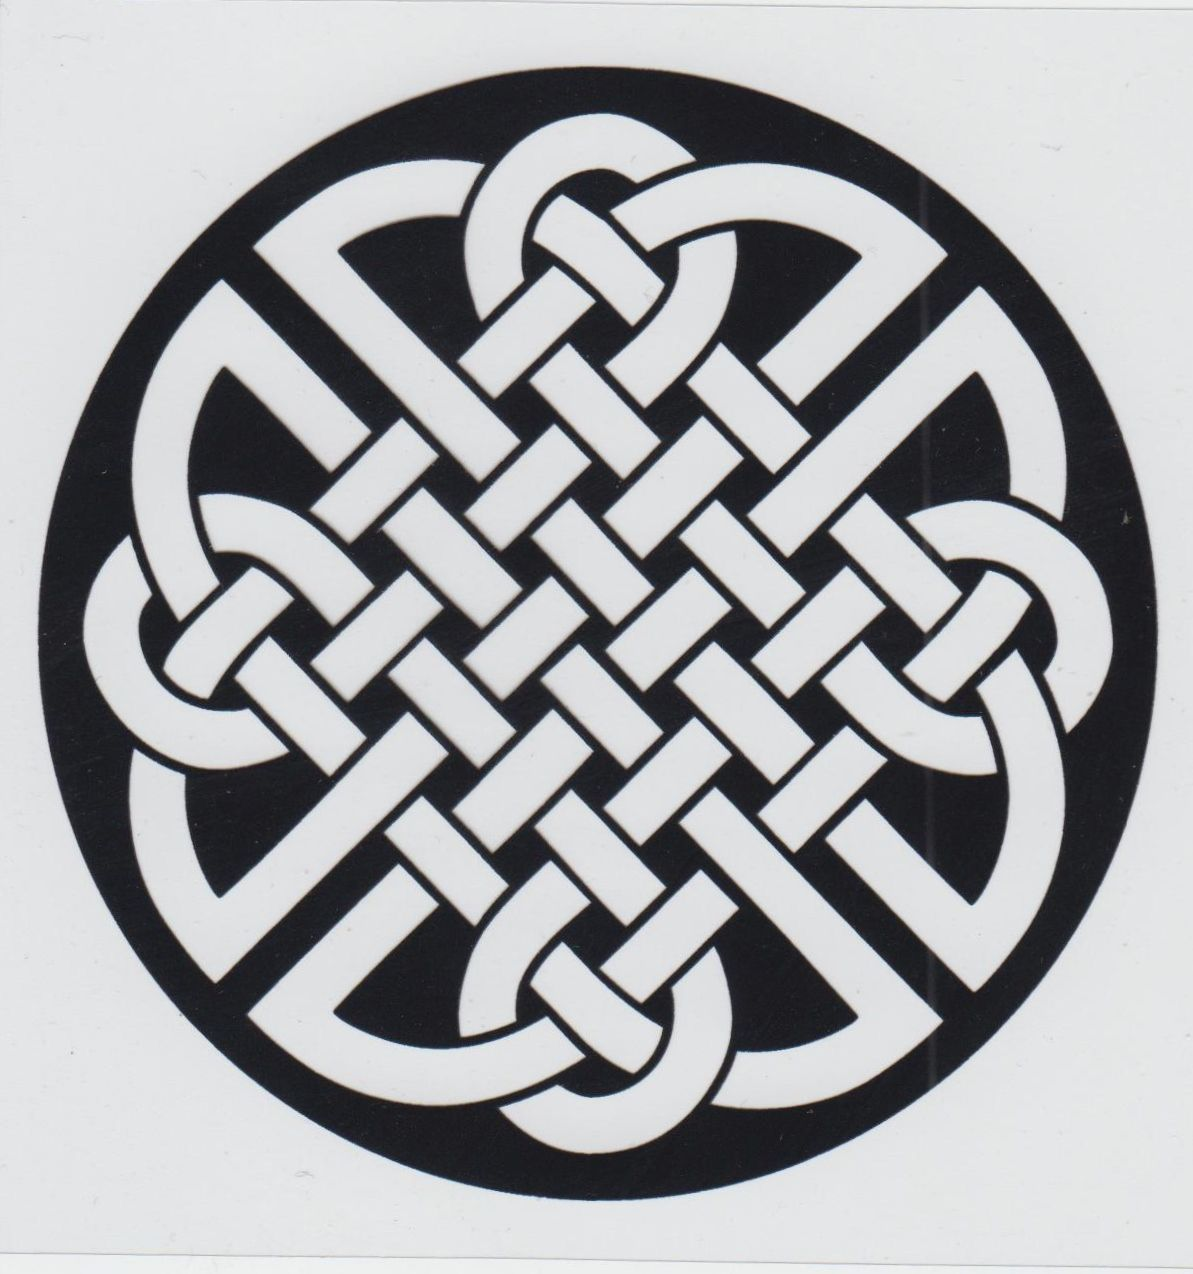 Pin by Heather Dempsey on Wood Burning Ideas Celtic knot